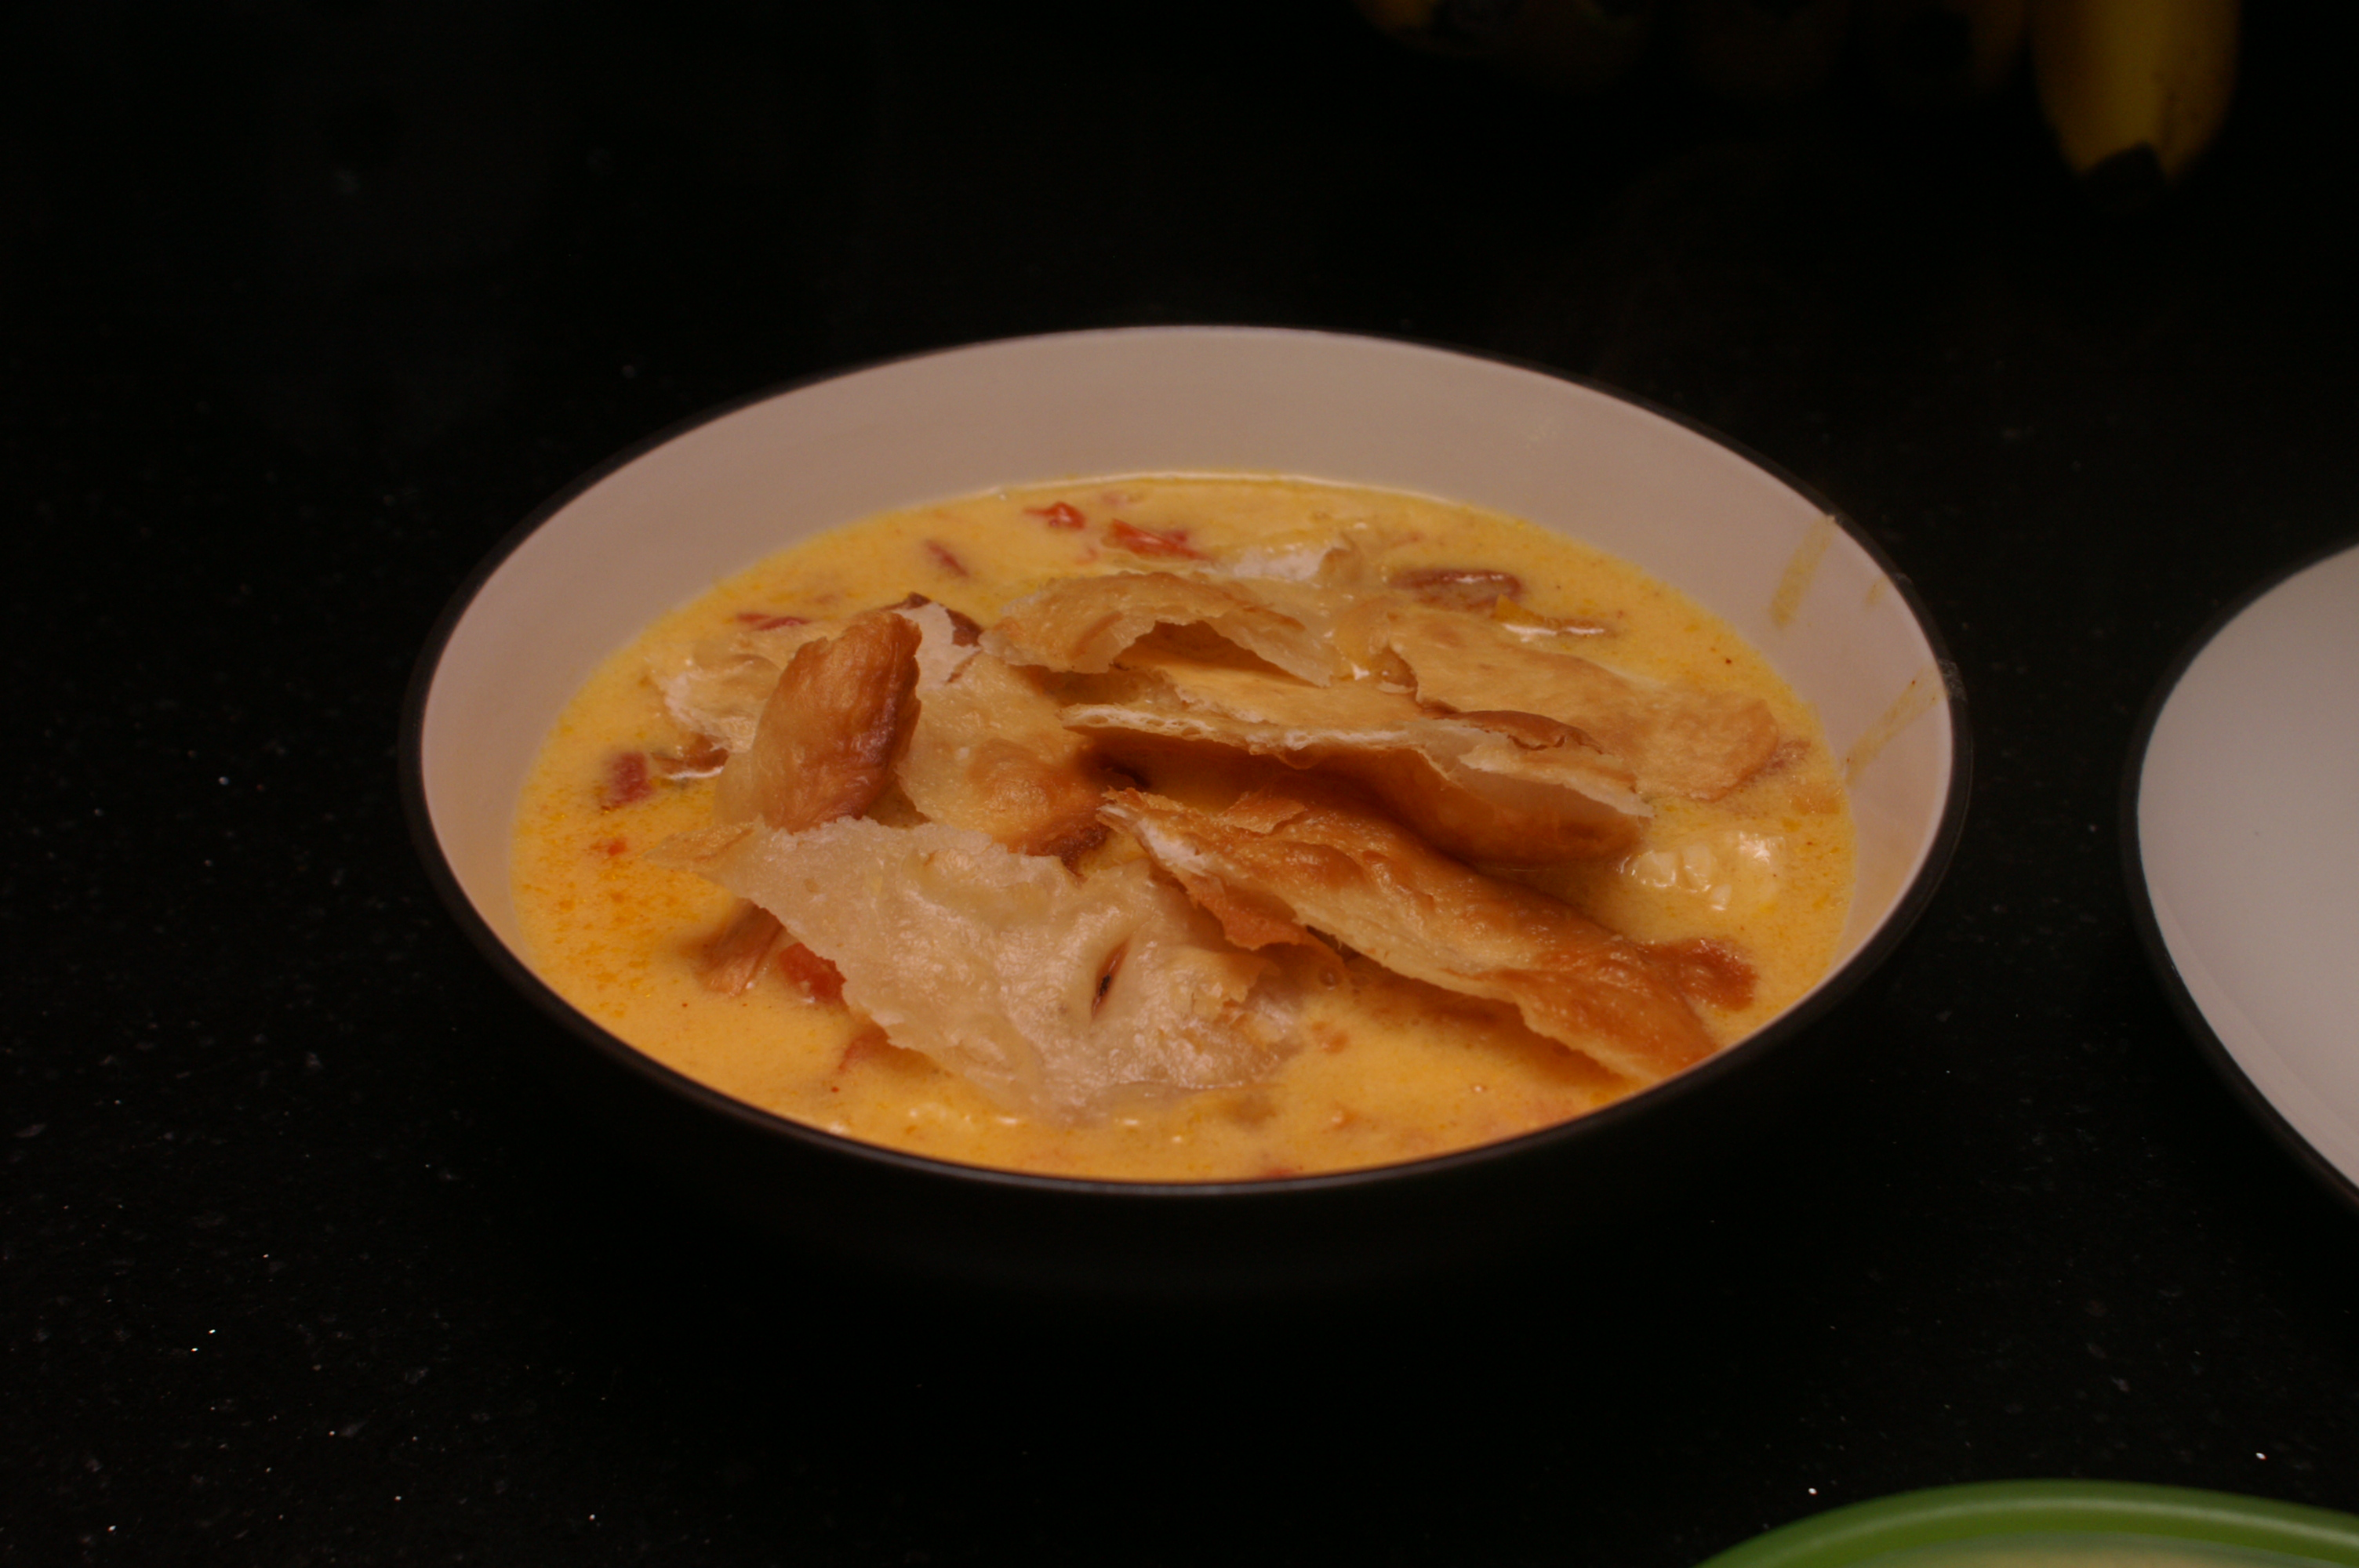 Trying a copycat recipe for Max and Erma's tortilla soup